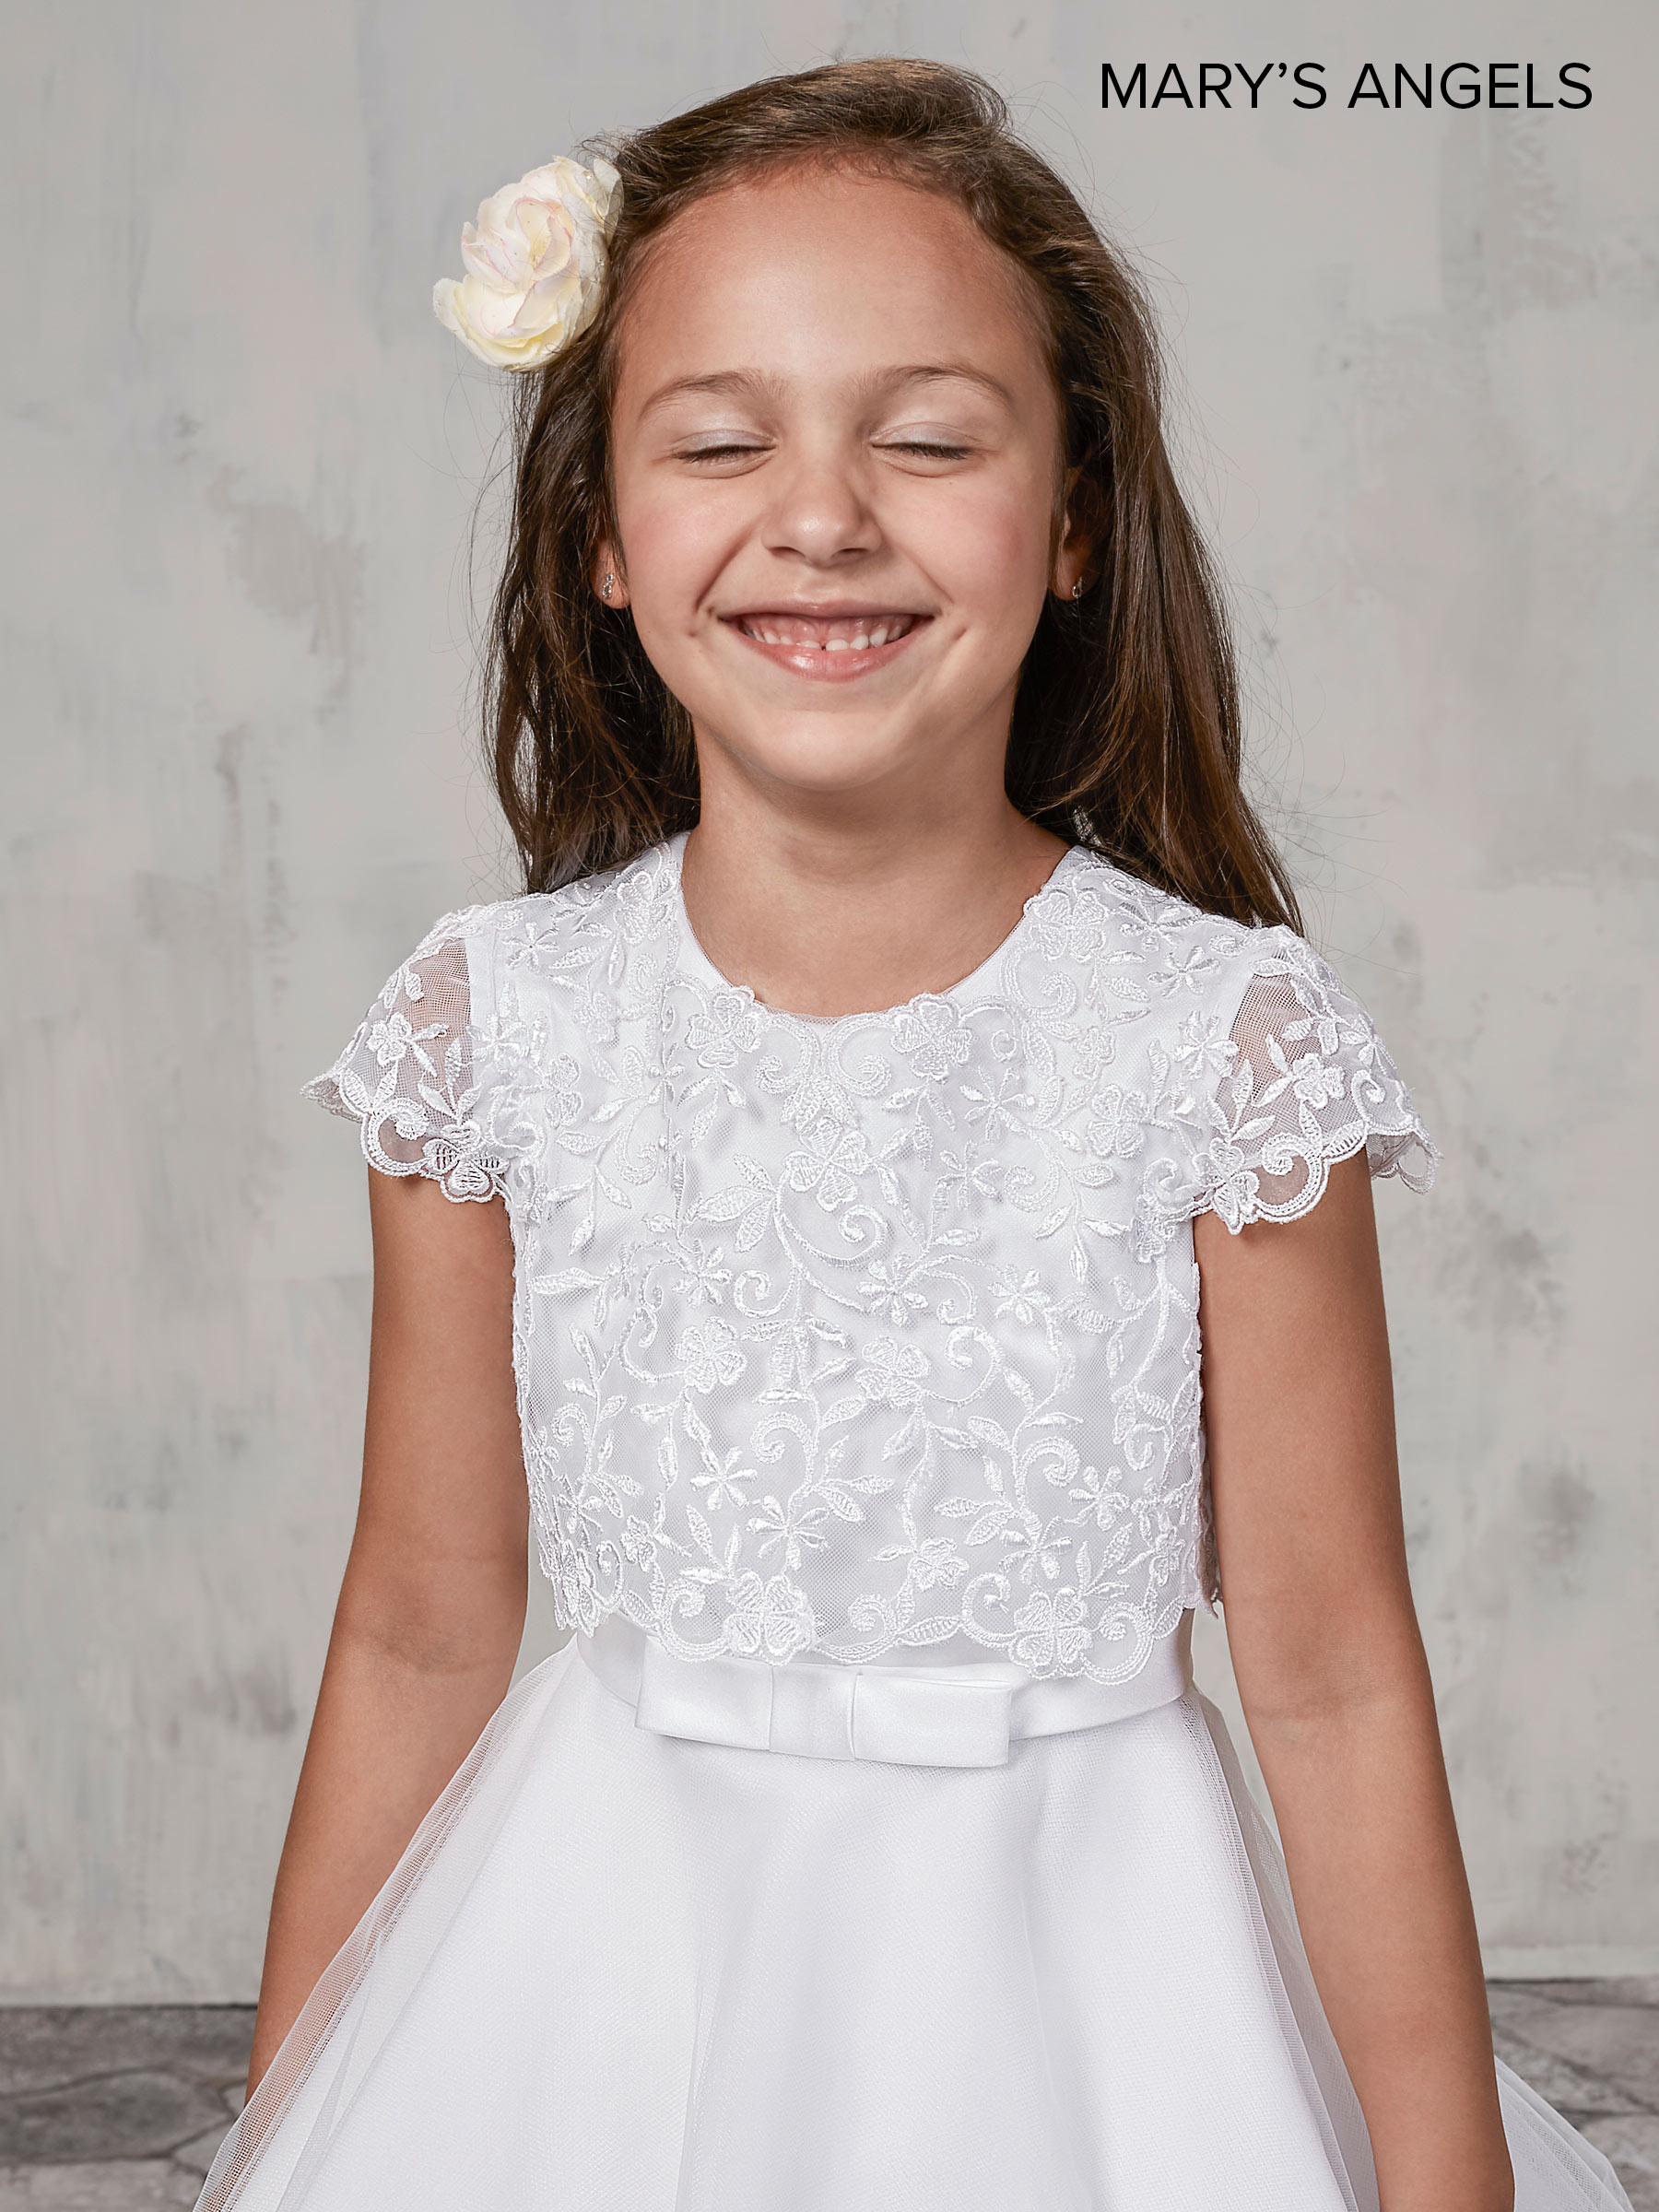 Angel Flower Girl Dresses   Mary's Angels   Style - MB9011